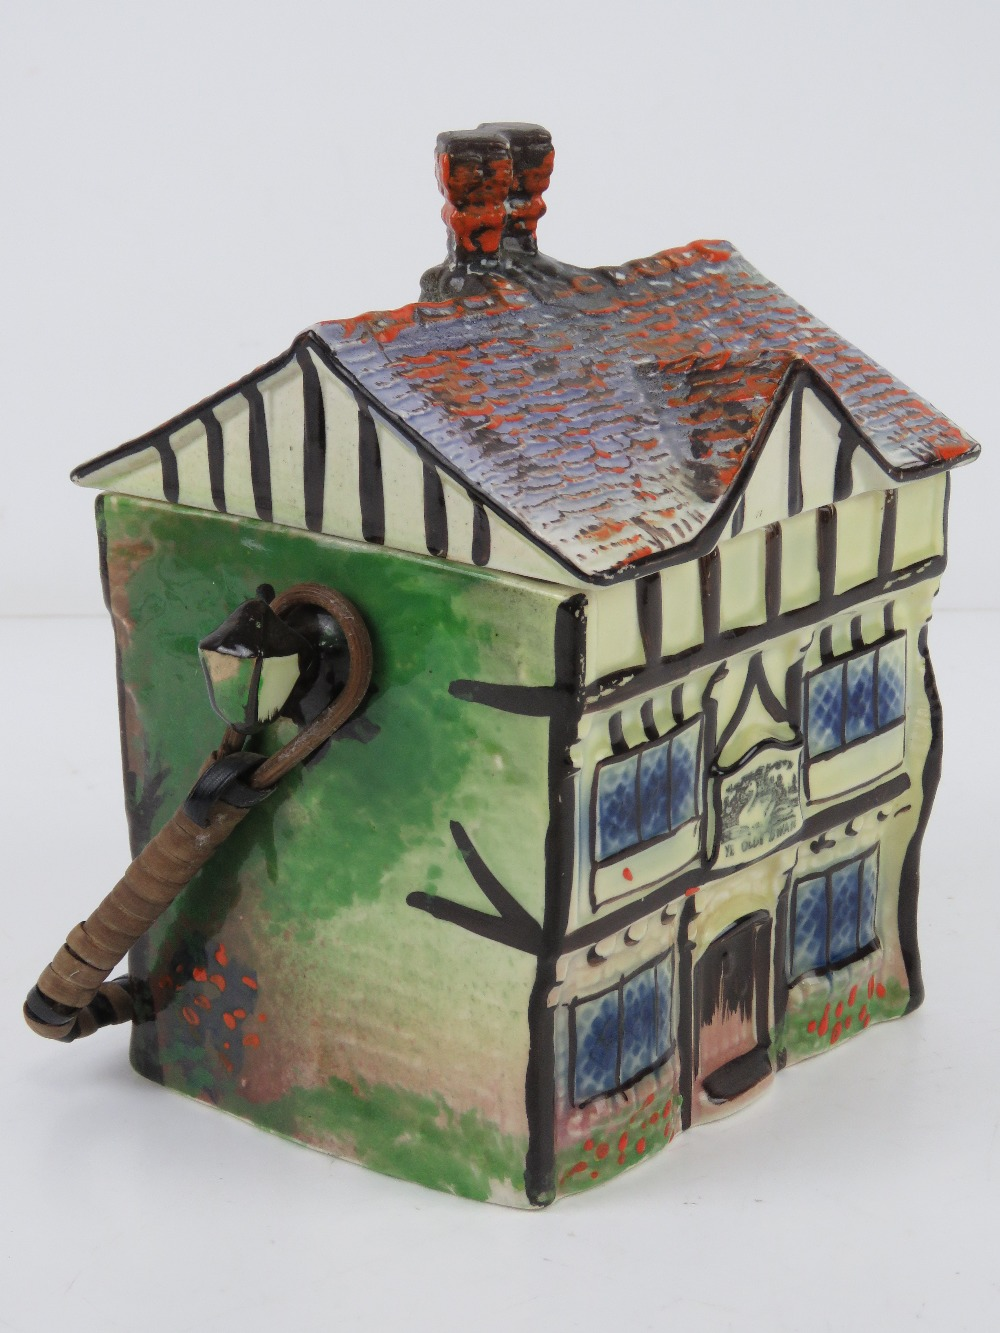 A hand painted ceramic wafer / biscuit barrel in the form of a beamed house 'Ye Olde Inne'. - Image 4 of 4